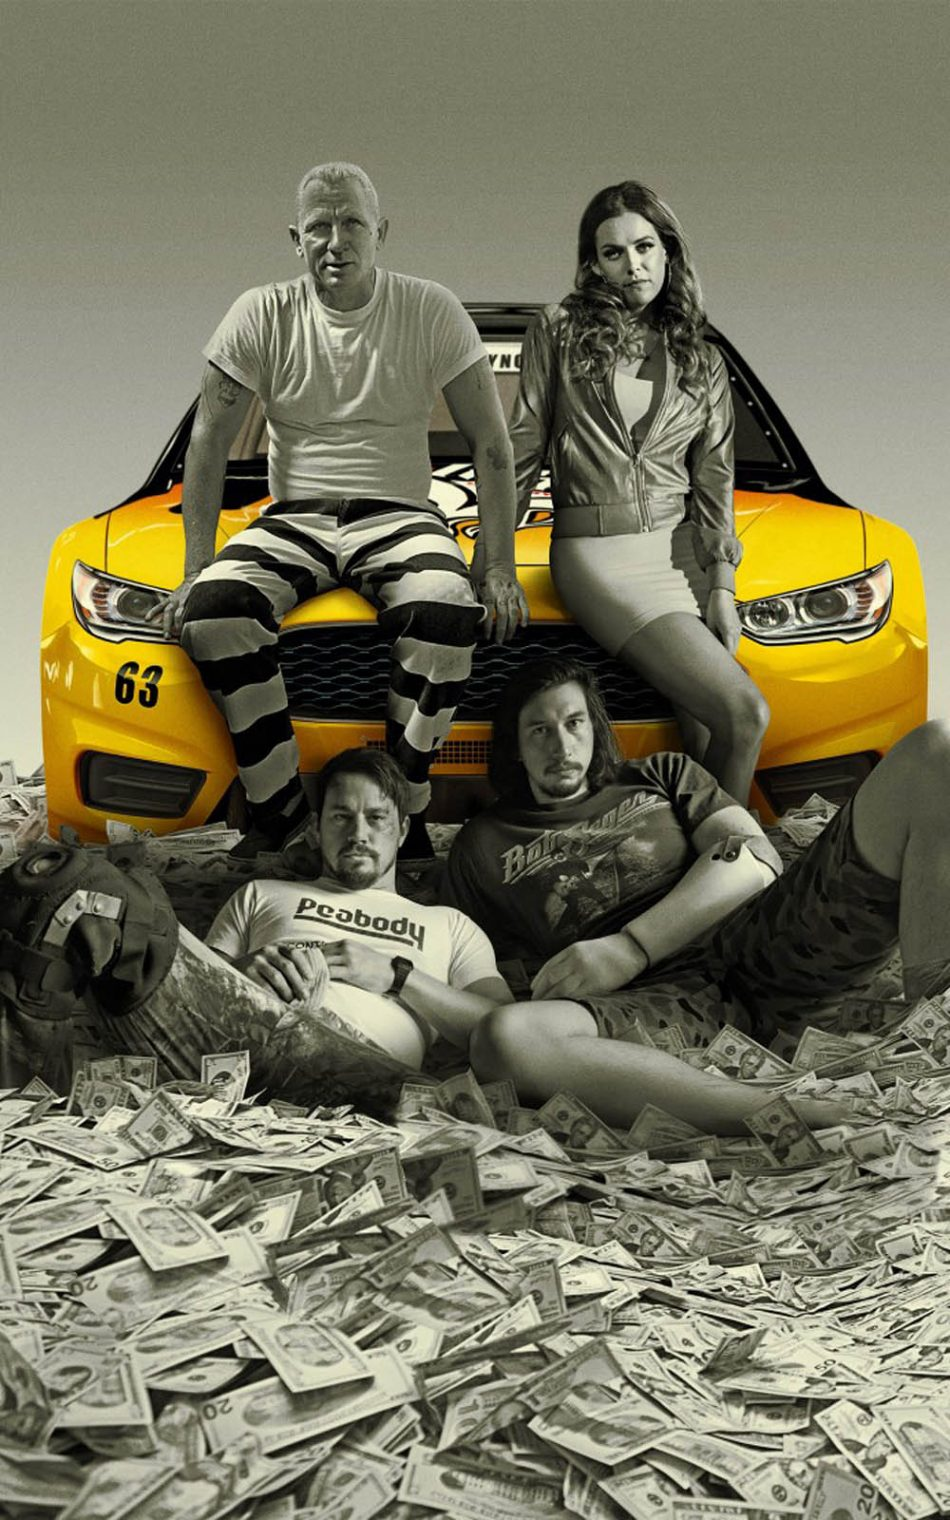 logan lucky 2017 movie - download free 100% pure hd quality mobile